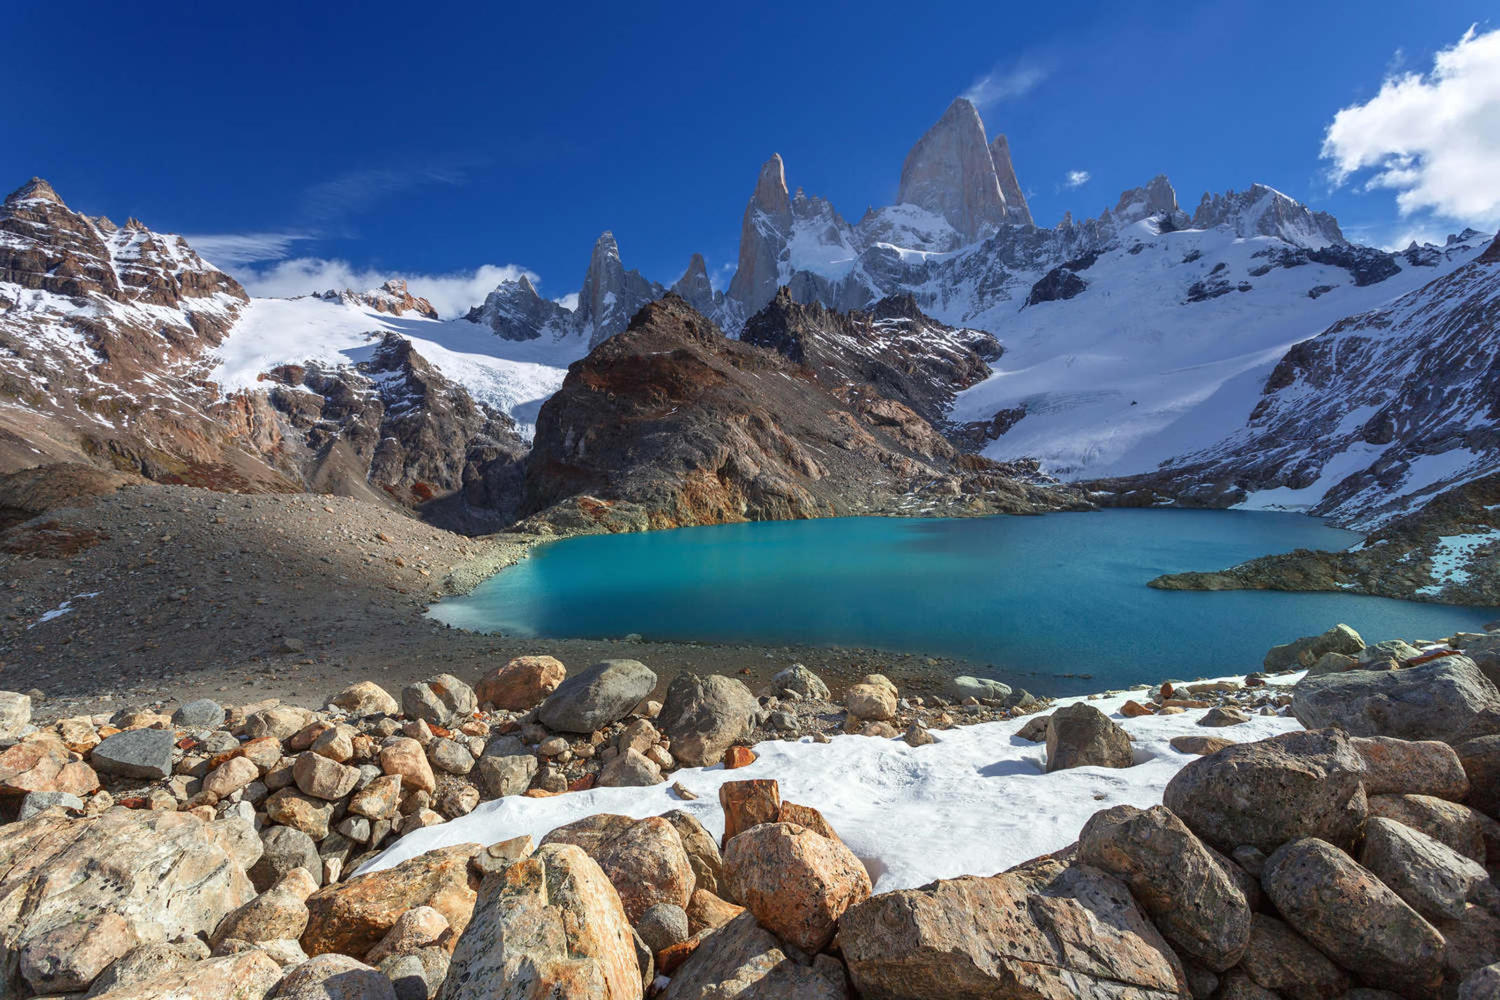 Stunning view of Mount FitzRoy